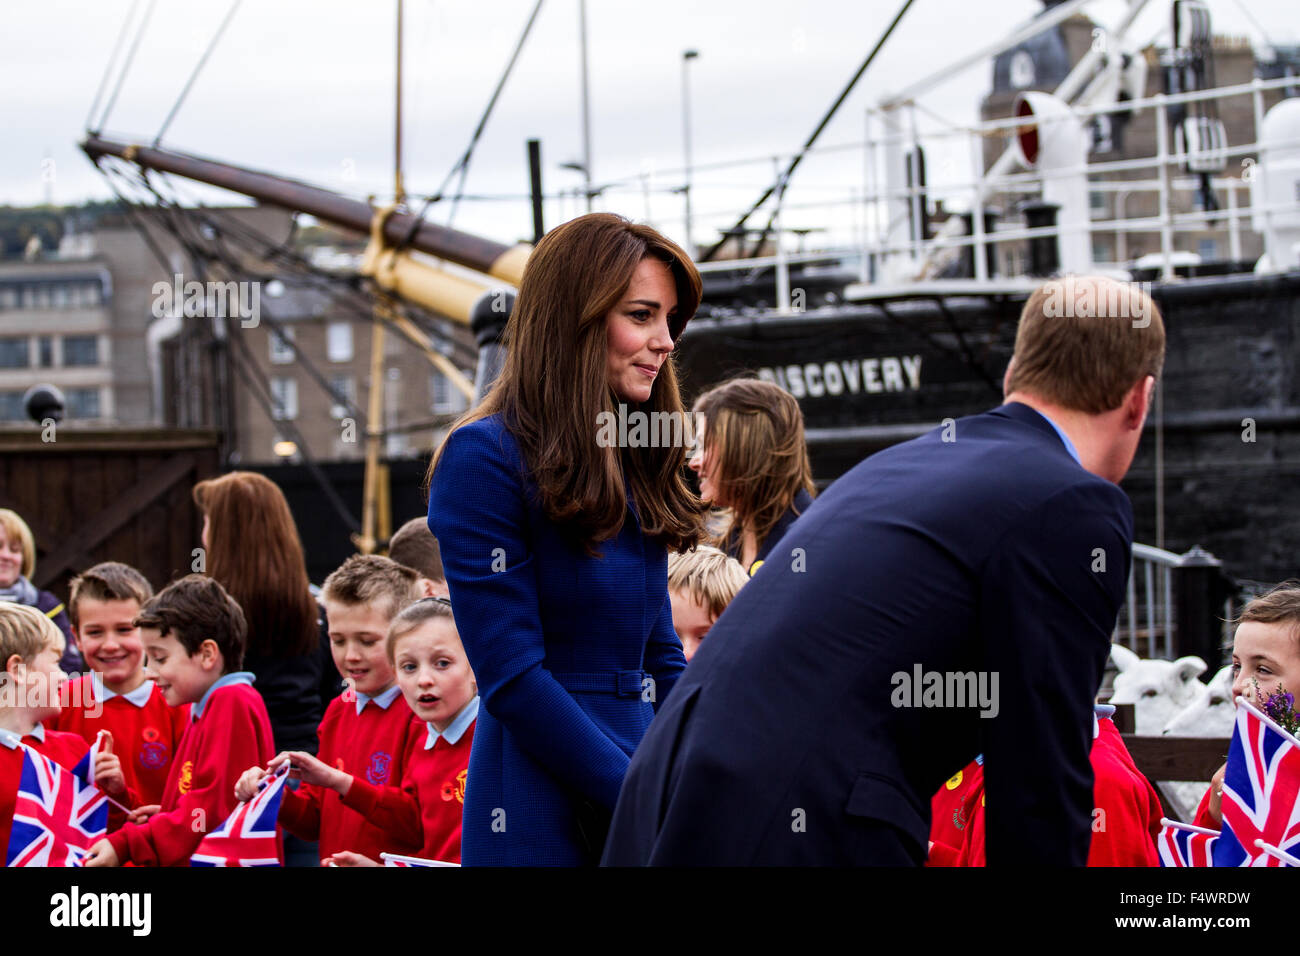 Dundee, Tayside, Scotland, UK, 23rd October 2015. Duke and Duchess of Cambridge visit to Dundee. Prince William Stock Photo